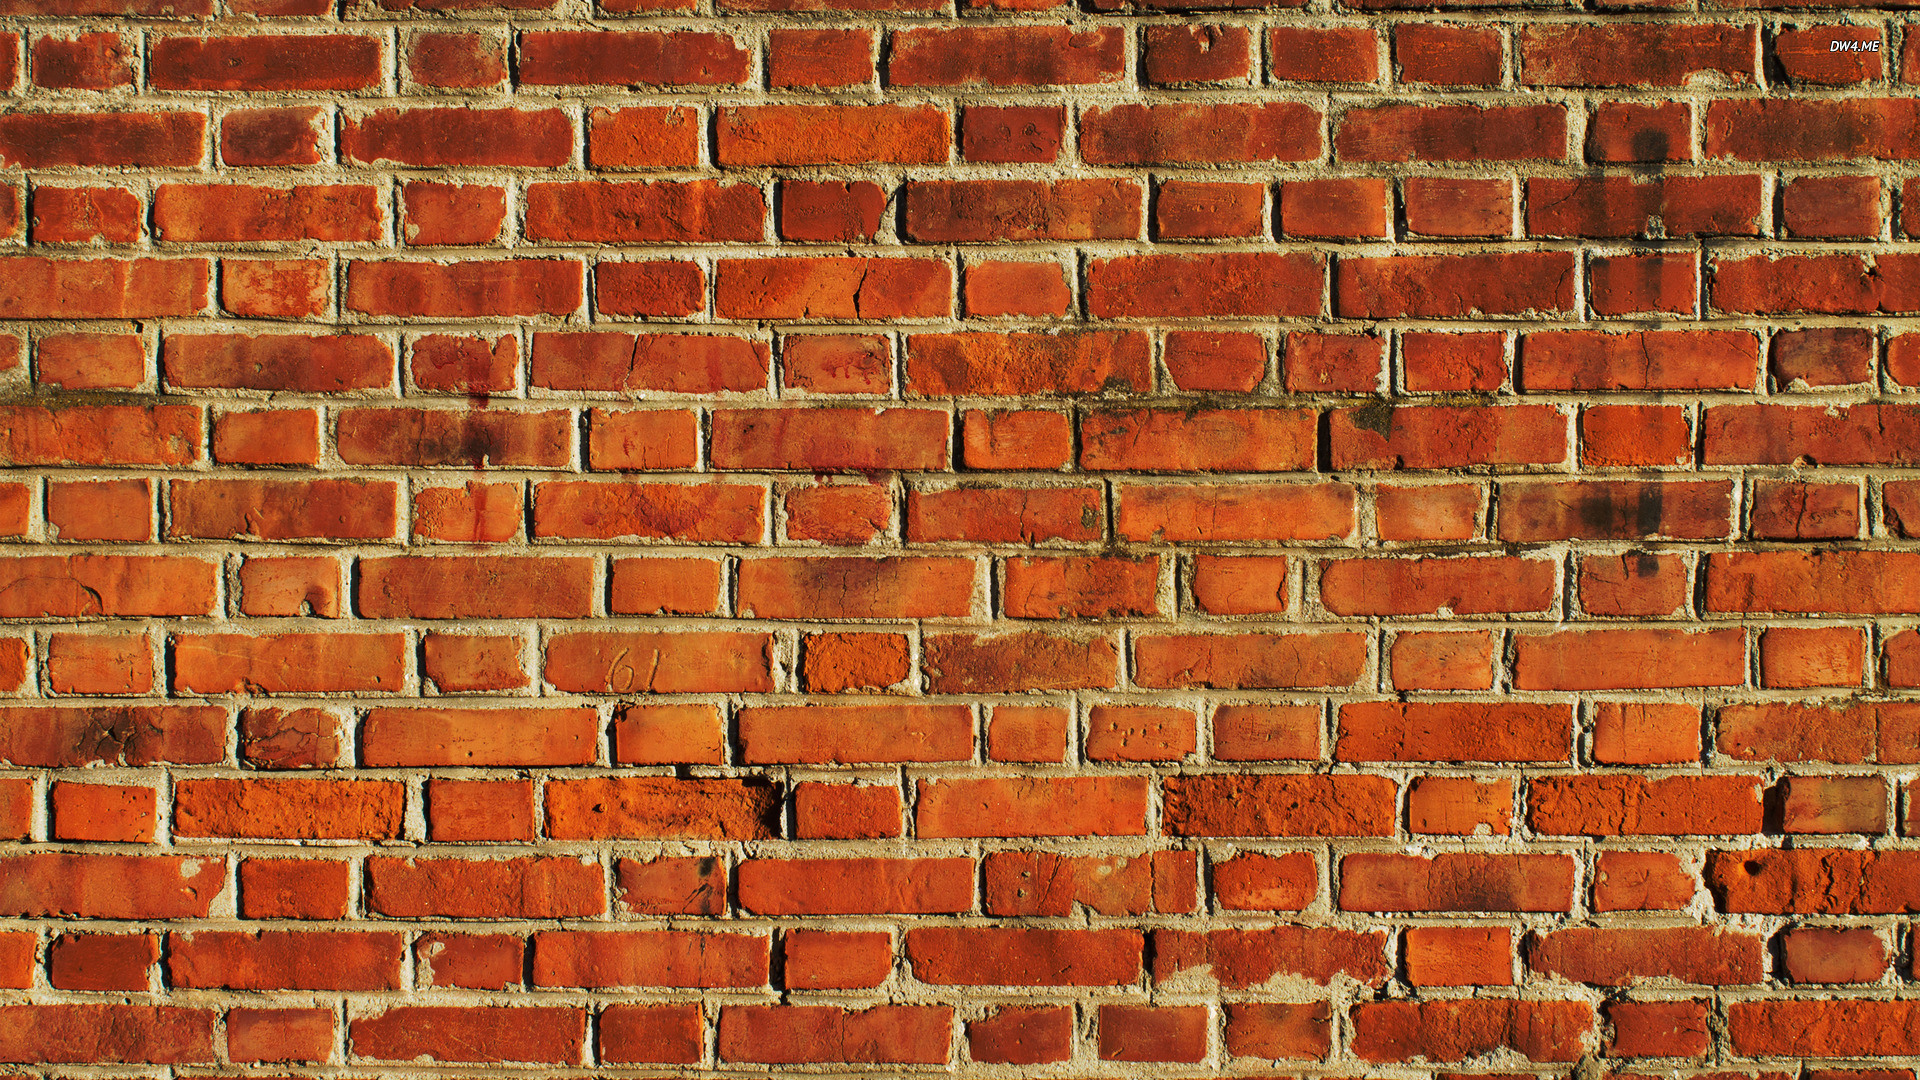 brick wallpaper photography